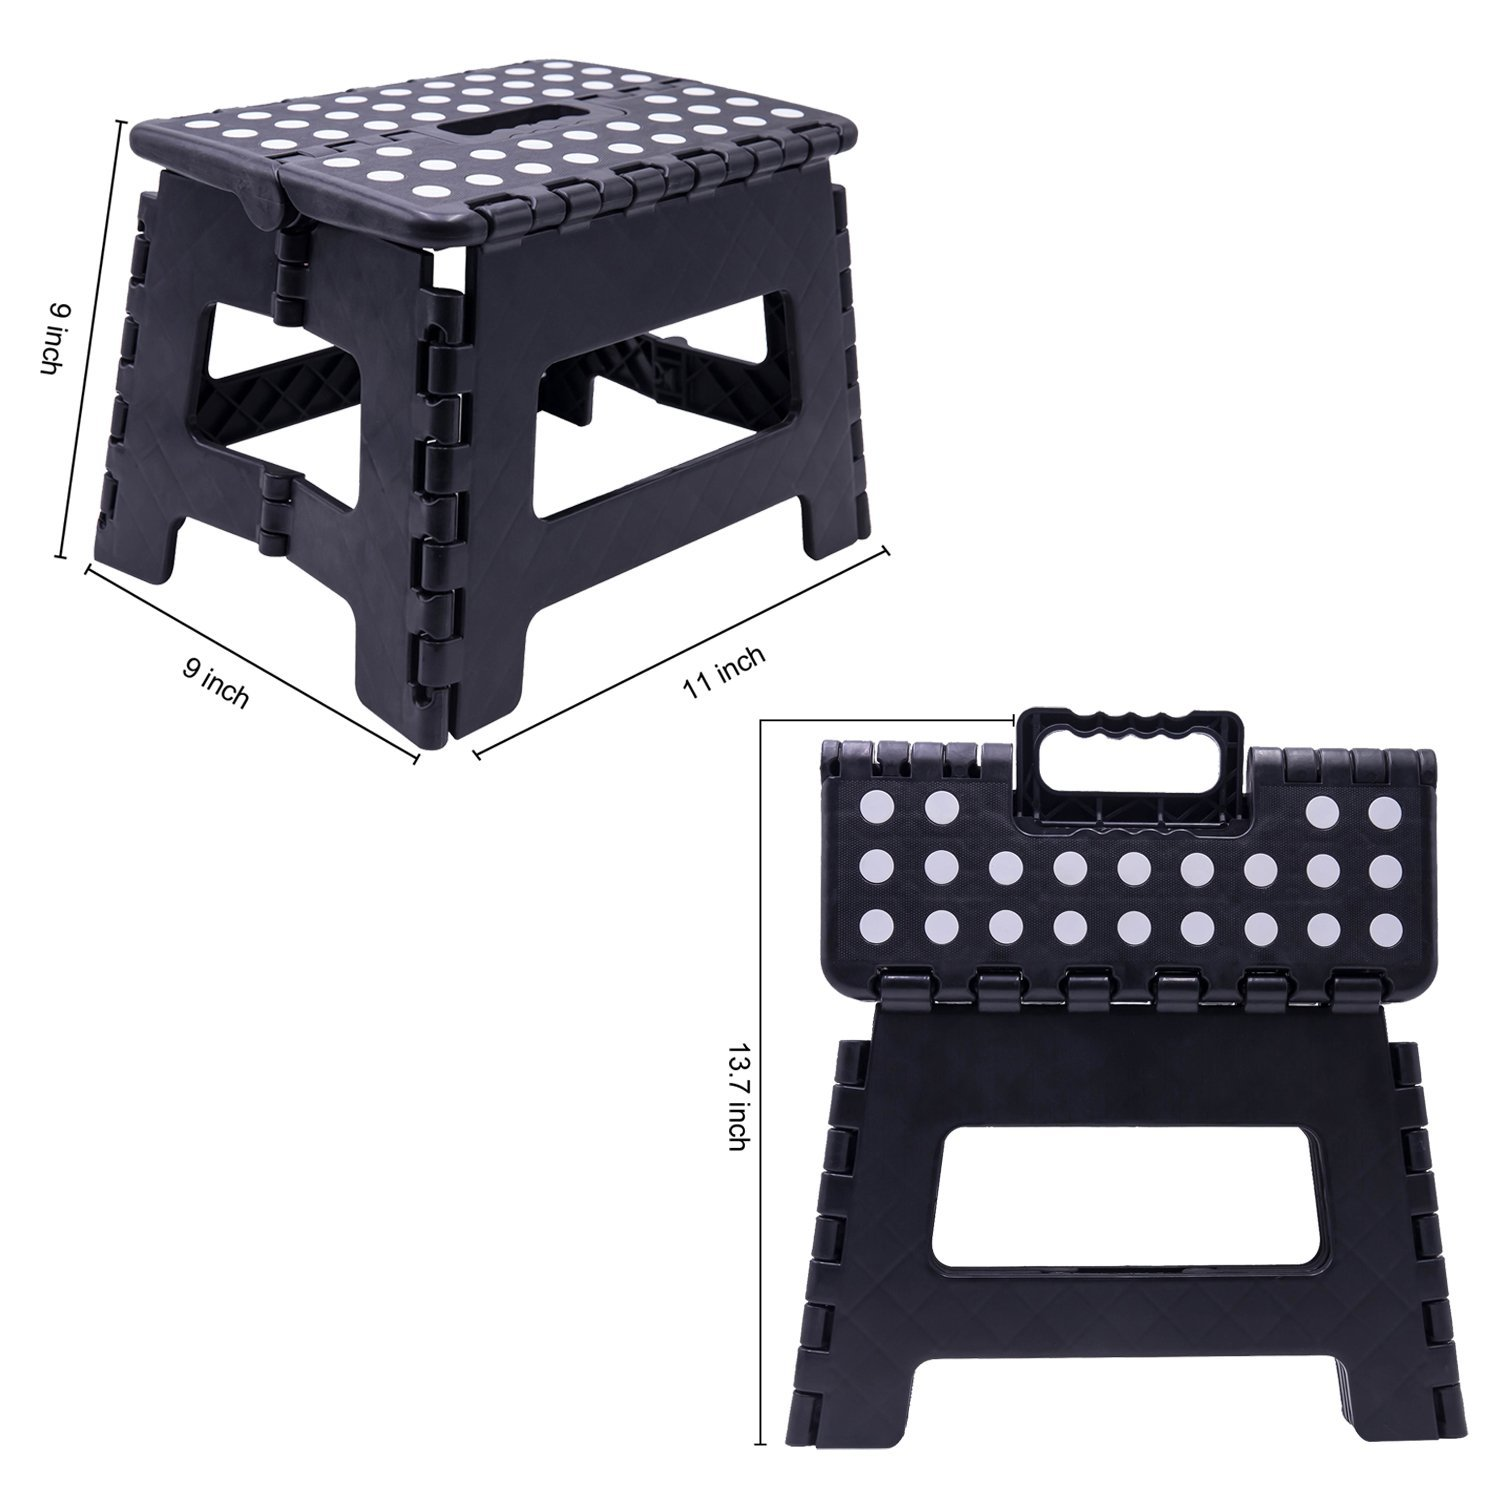 Foldable Stool For Kids /& Adults 9 inch Height Folding Step Stool